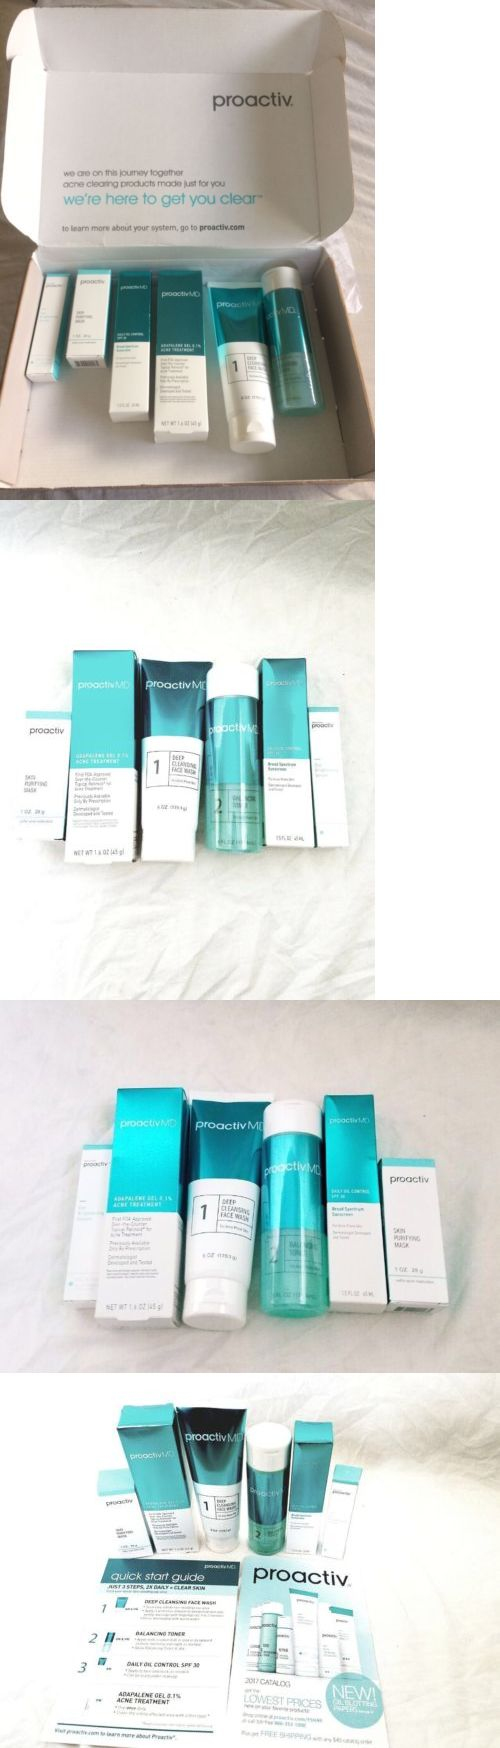 Acne and Blemish Treatments: Proactiv Md 6 Pieces Kit 90 Days + Skin Purifying Mask + Free Shipping!! -> BUY IT NOW ONLY: $49.99 on eBay!